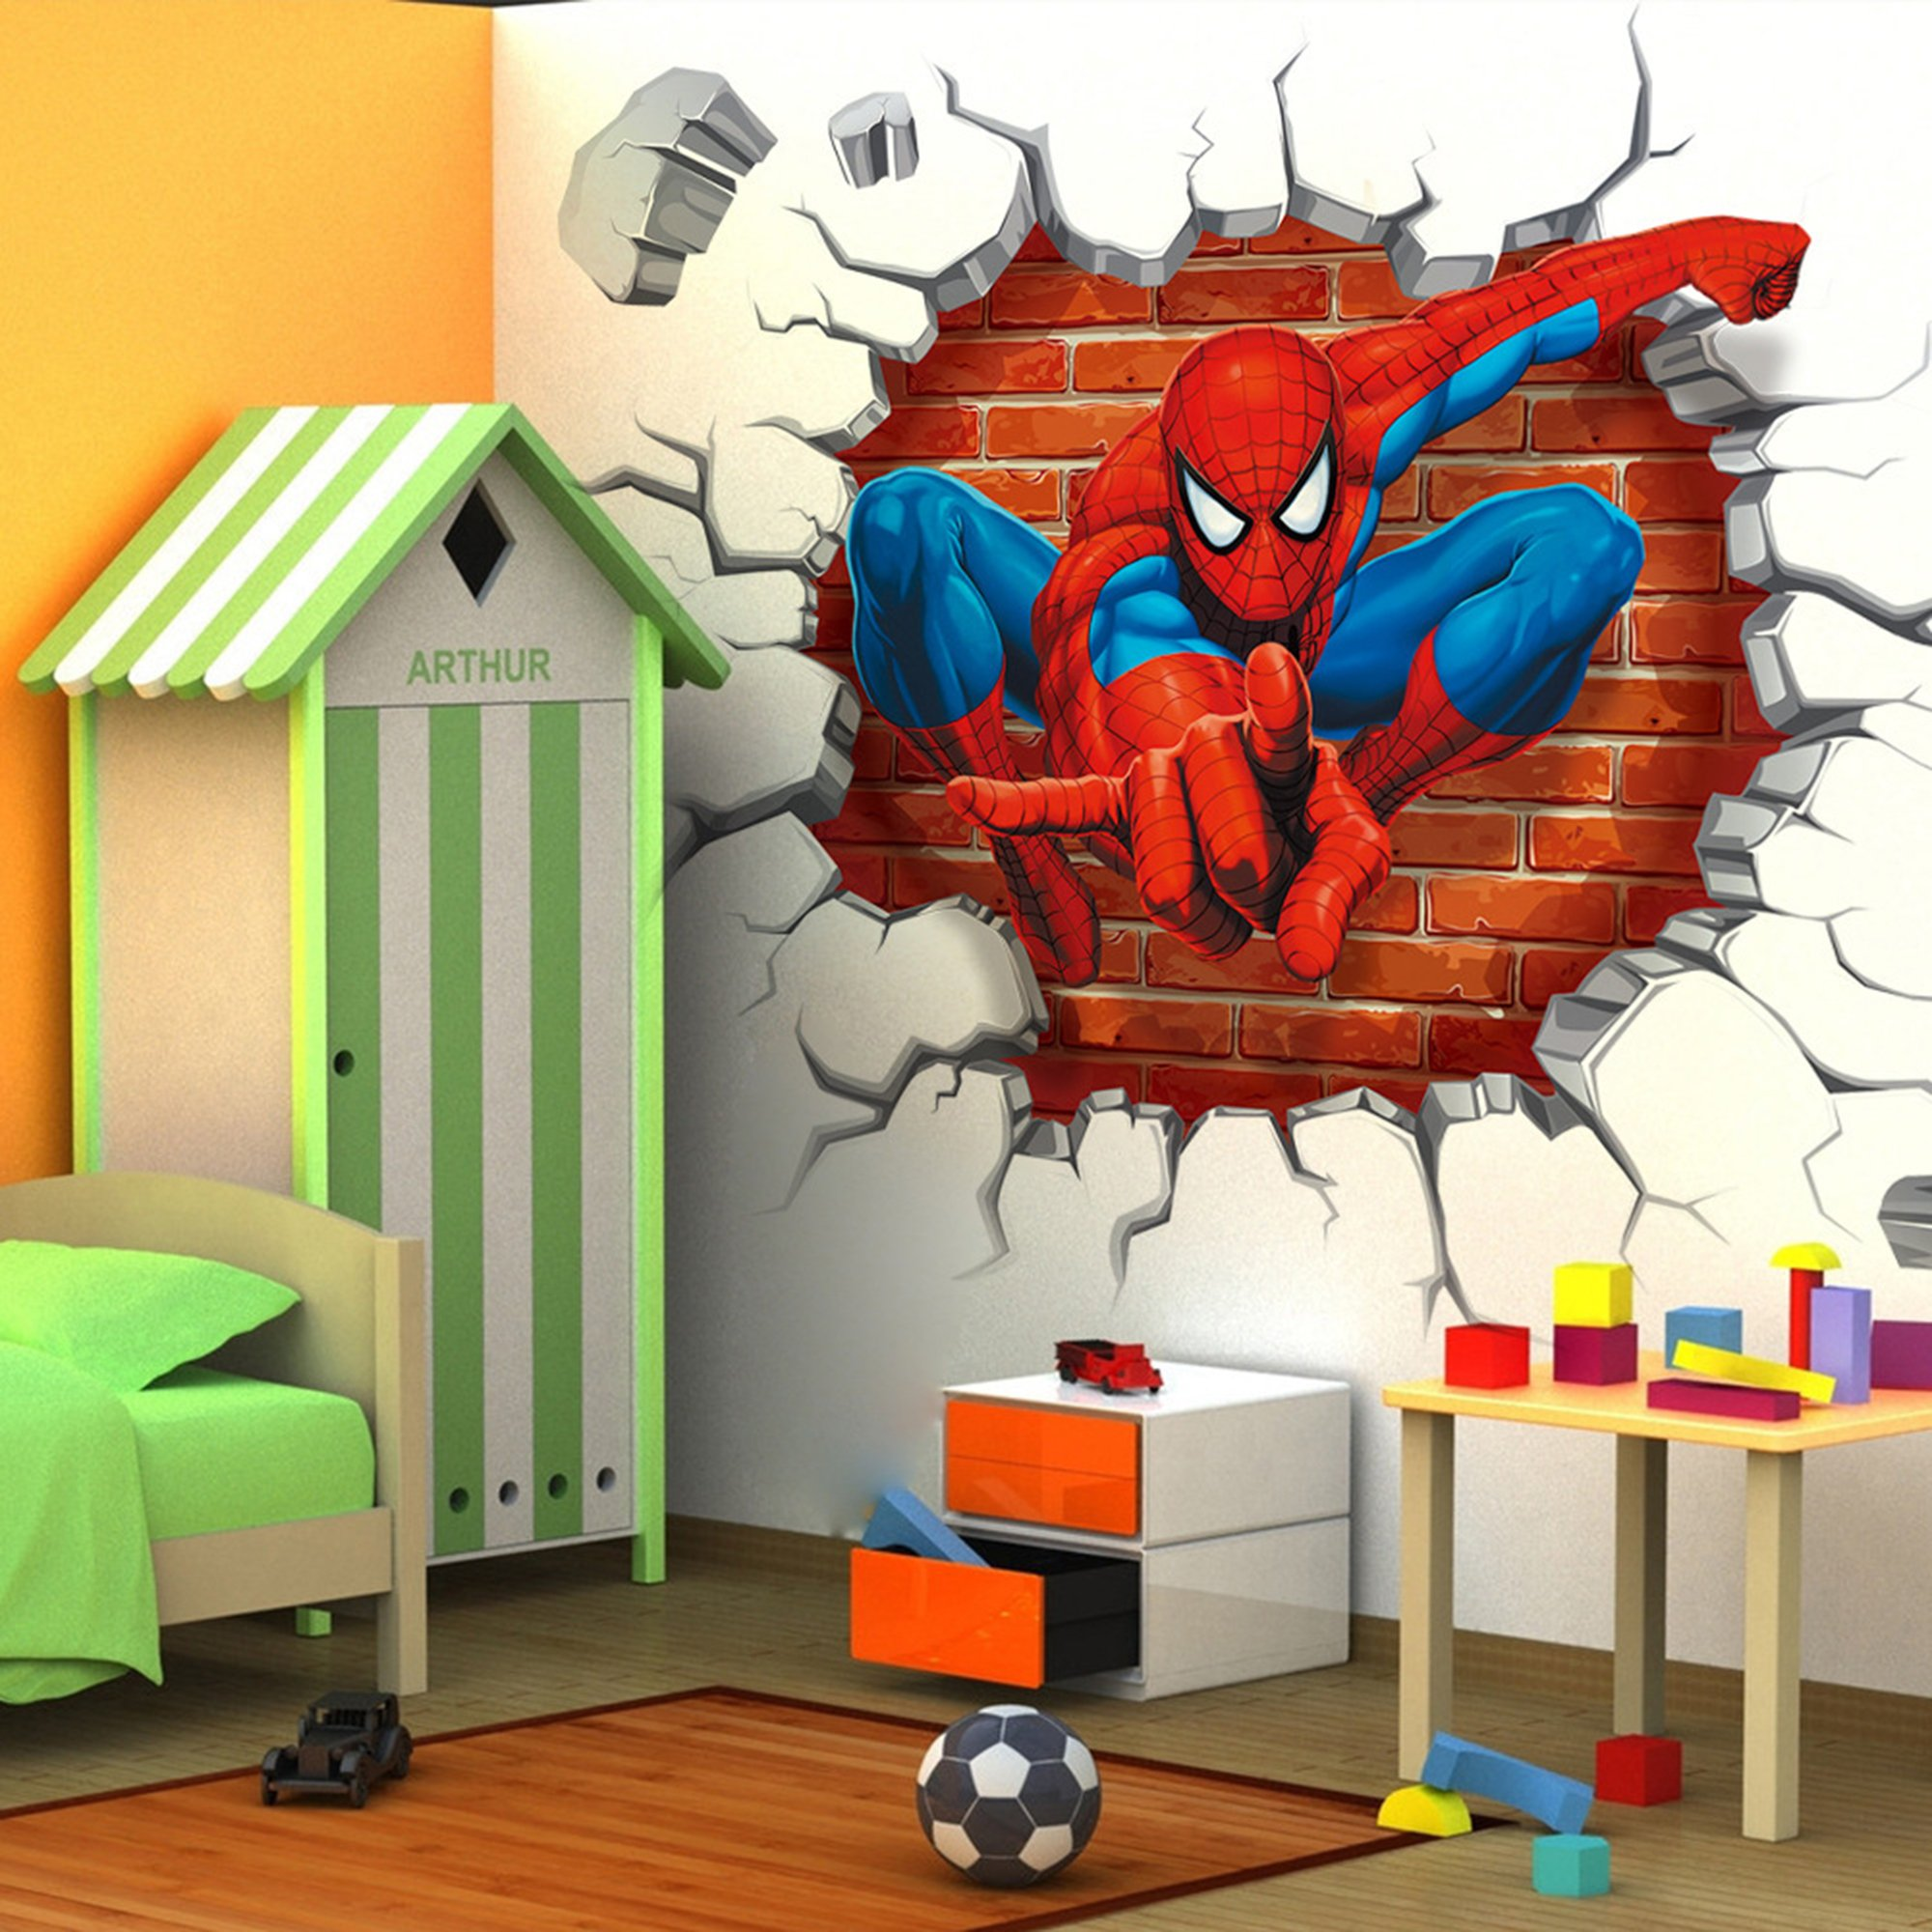 NOMSOCR 3D Wall Stickers, Vinyl Stickers DIY Family Decor Wall Art for Kids Living Room Bedroom Bathroom Tile Office Home Decoration (Spider Man) by NOMSOCR (Image #7)